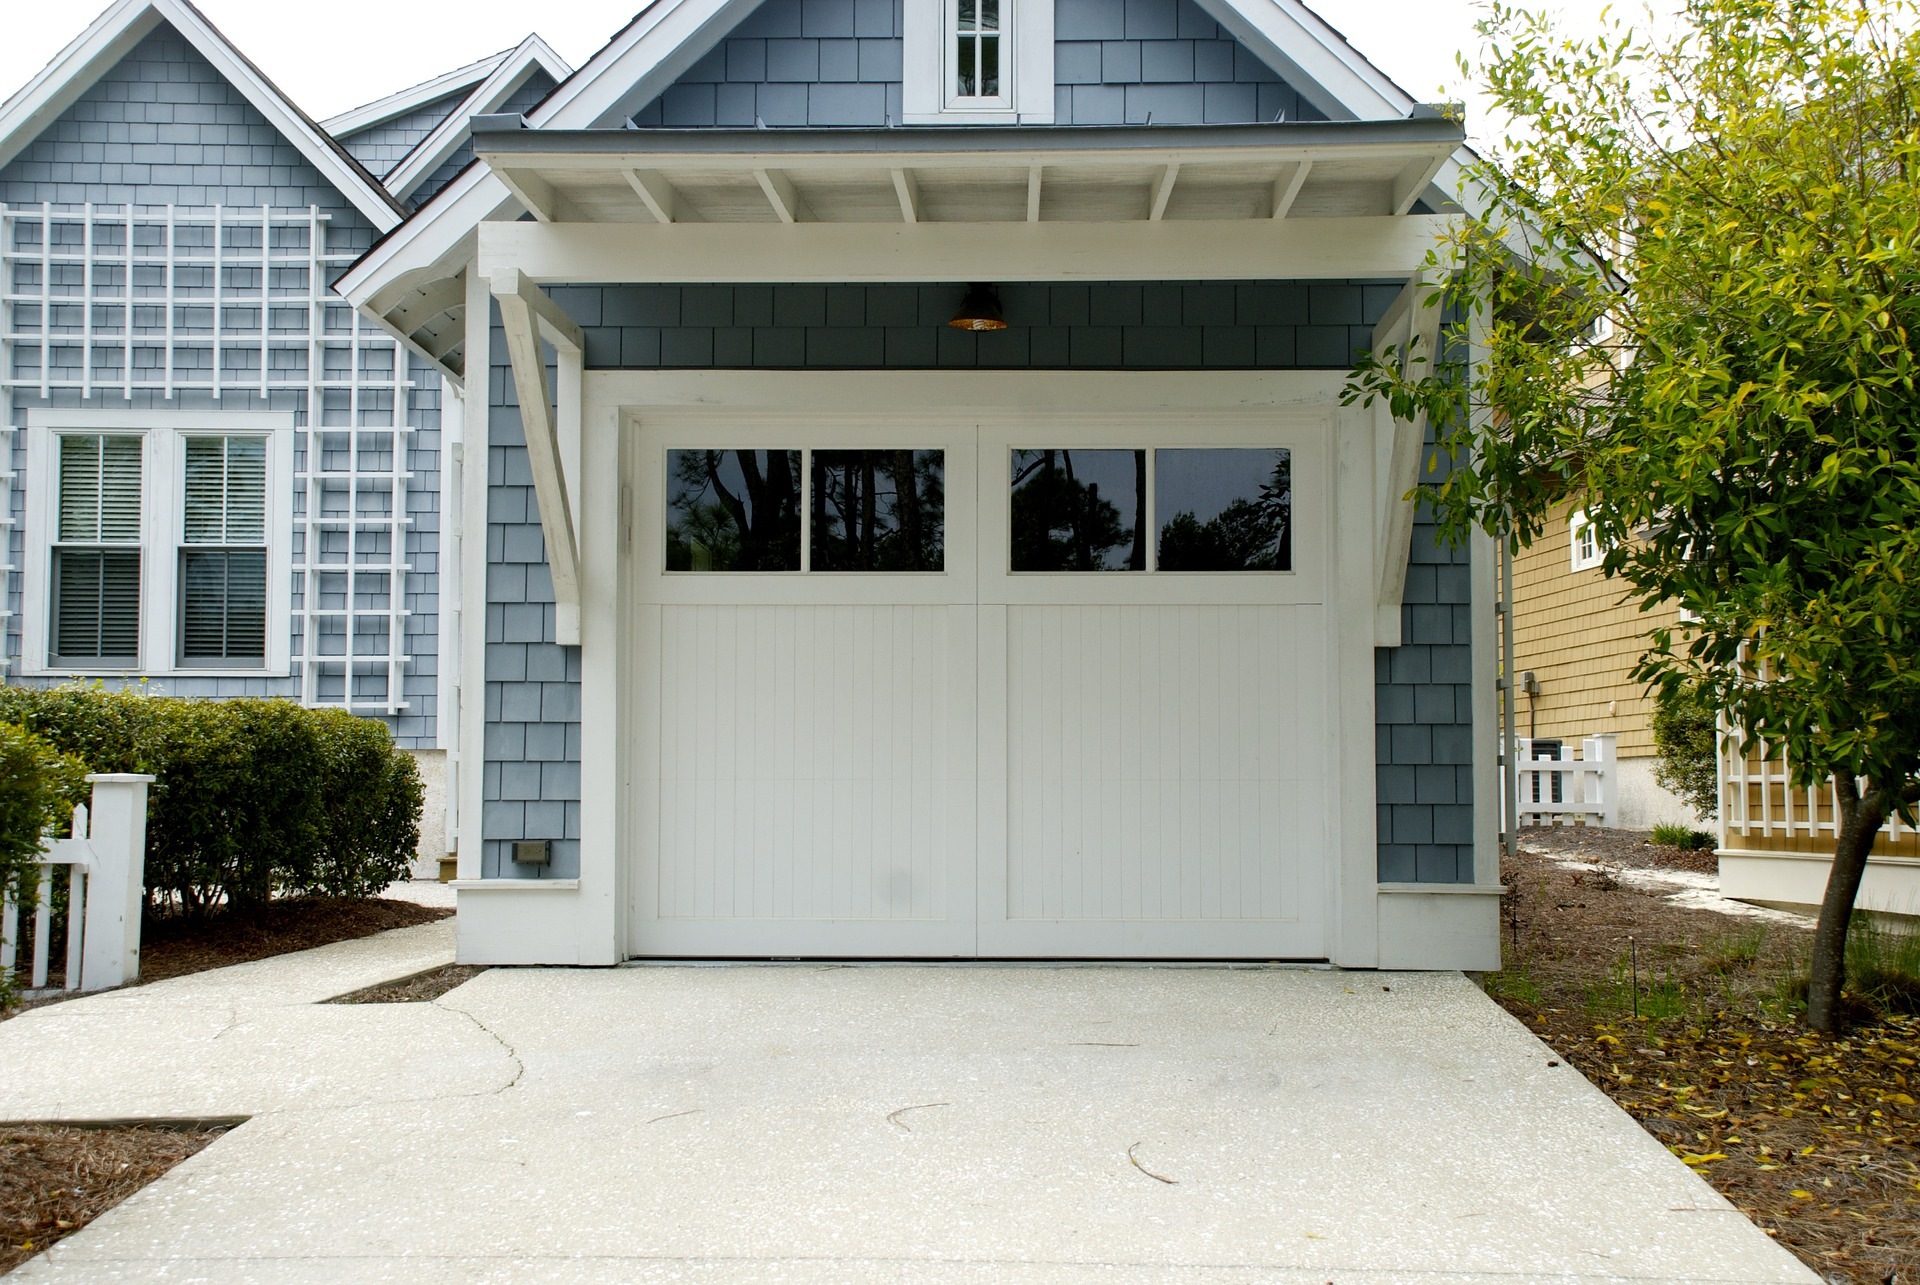 Garage Door Insulation in Santa Clarita